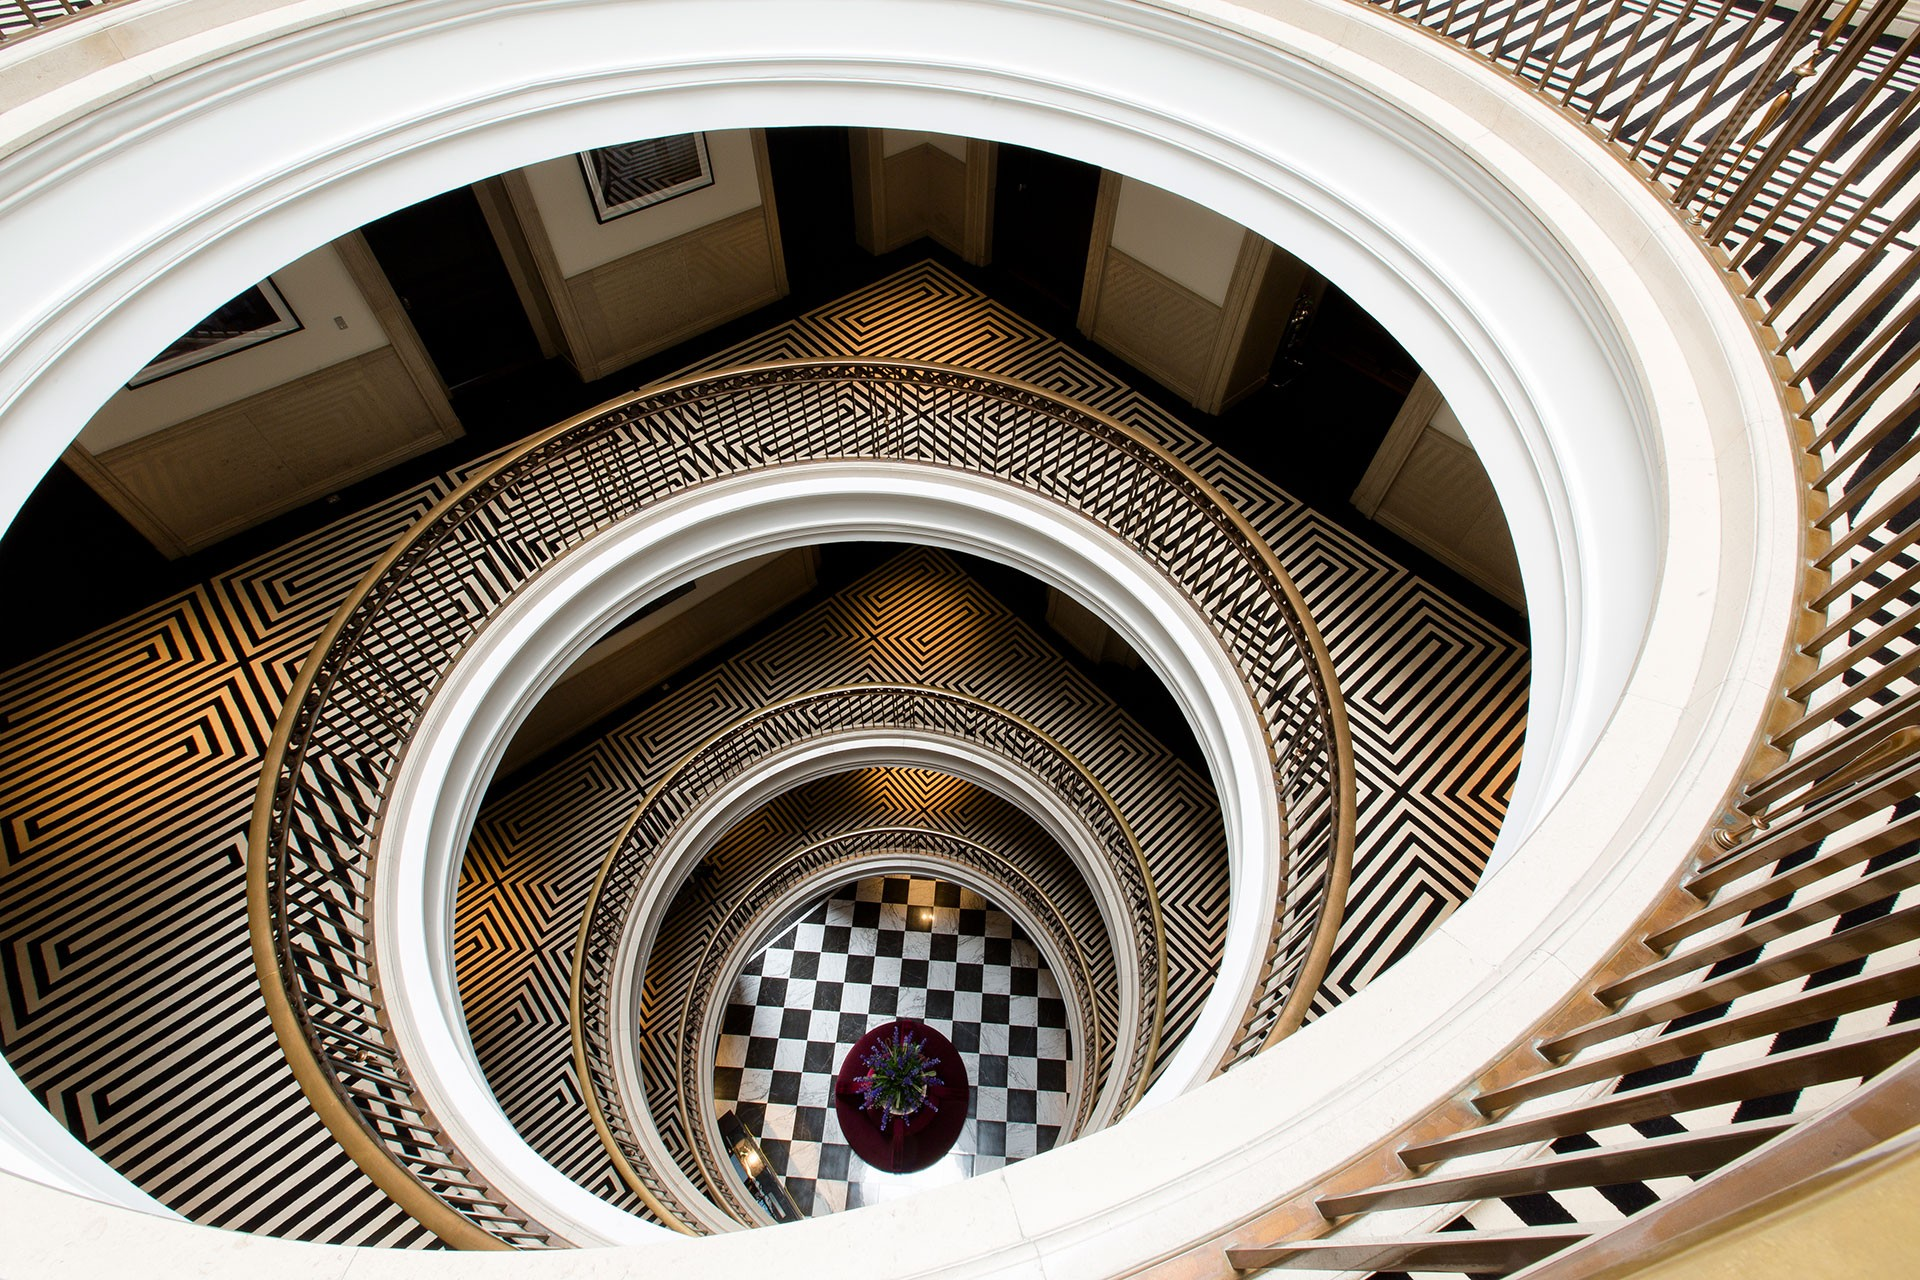 Why design lovers should visit The Edinburgh Grand, where bankers once sealed deals